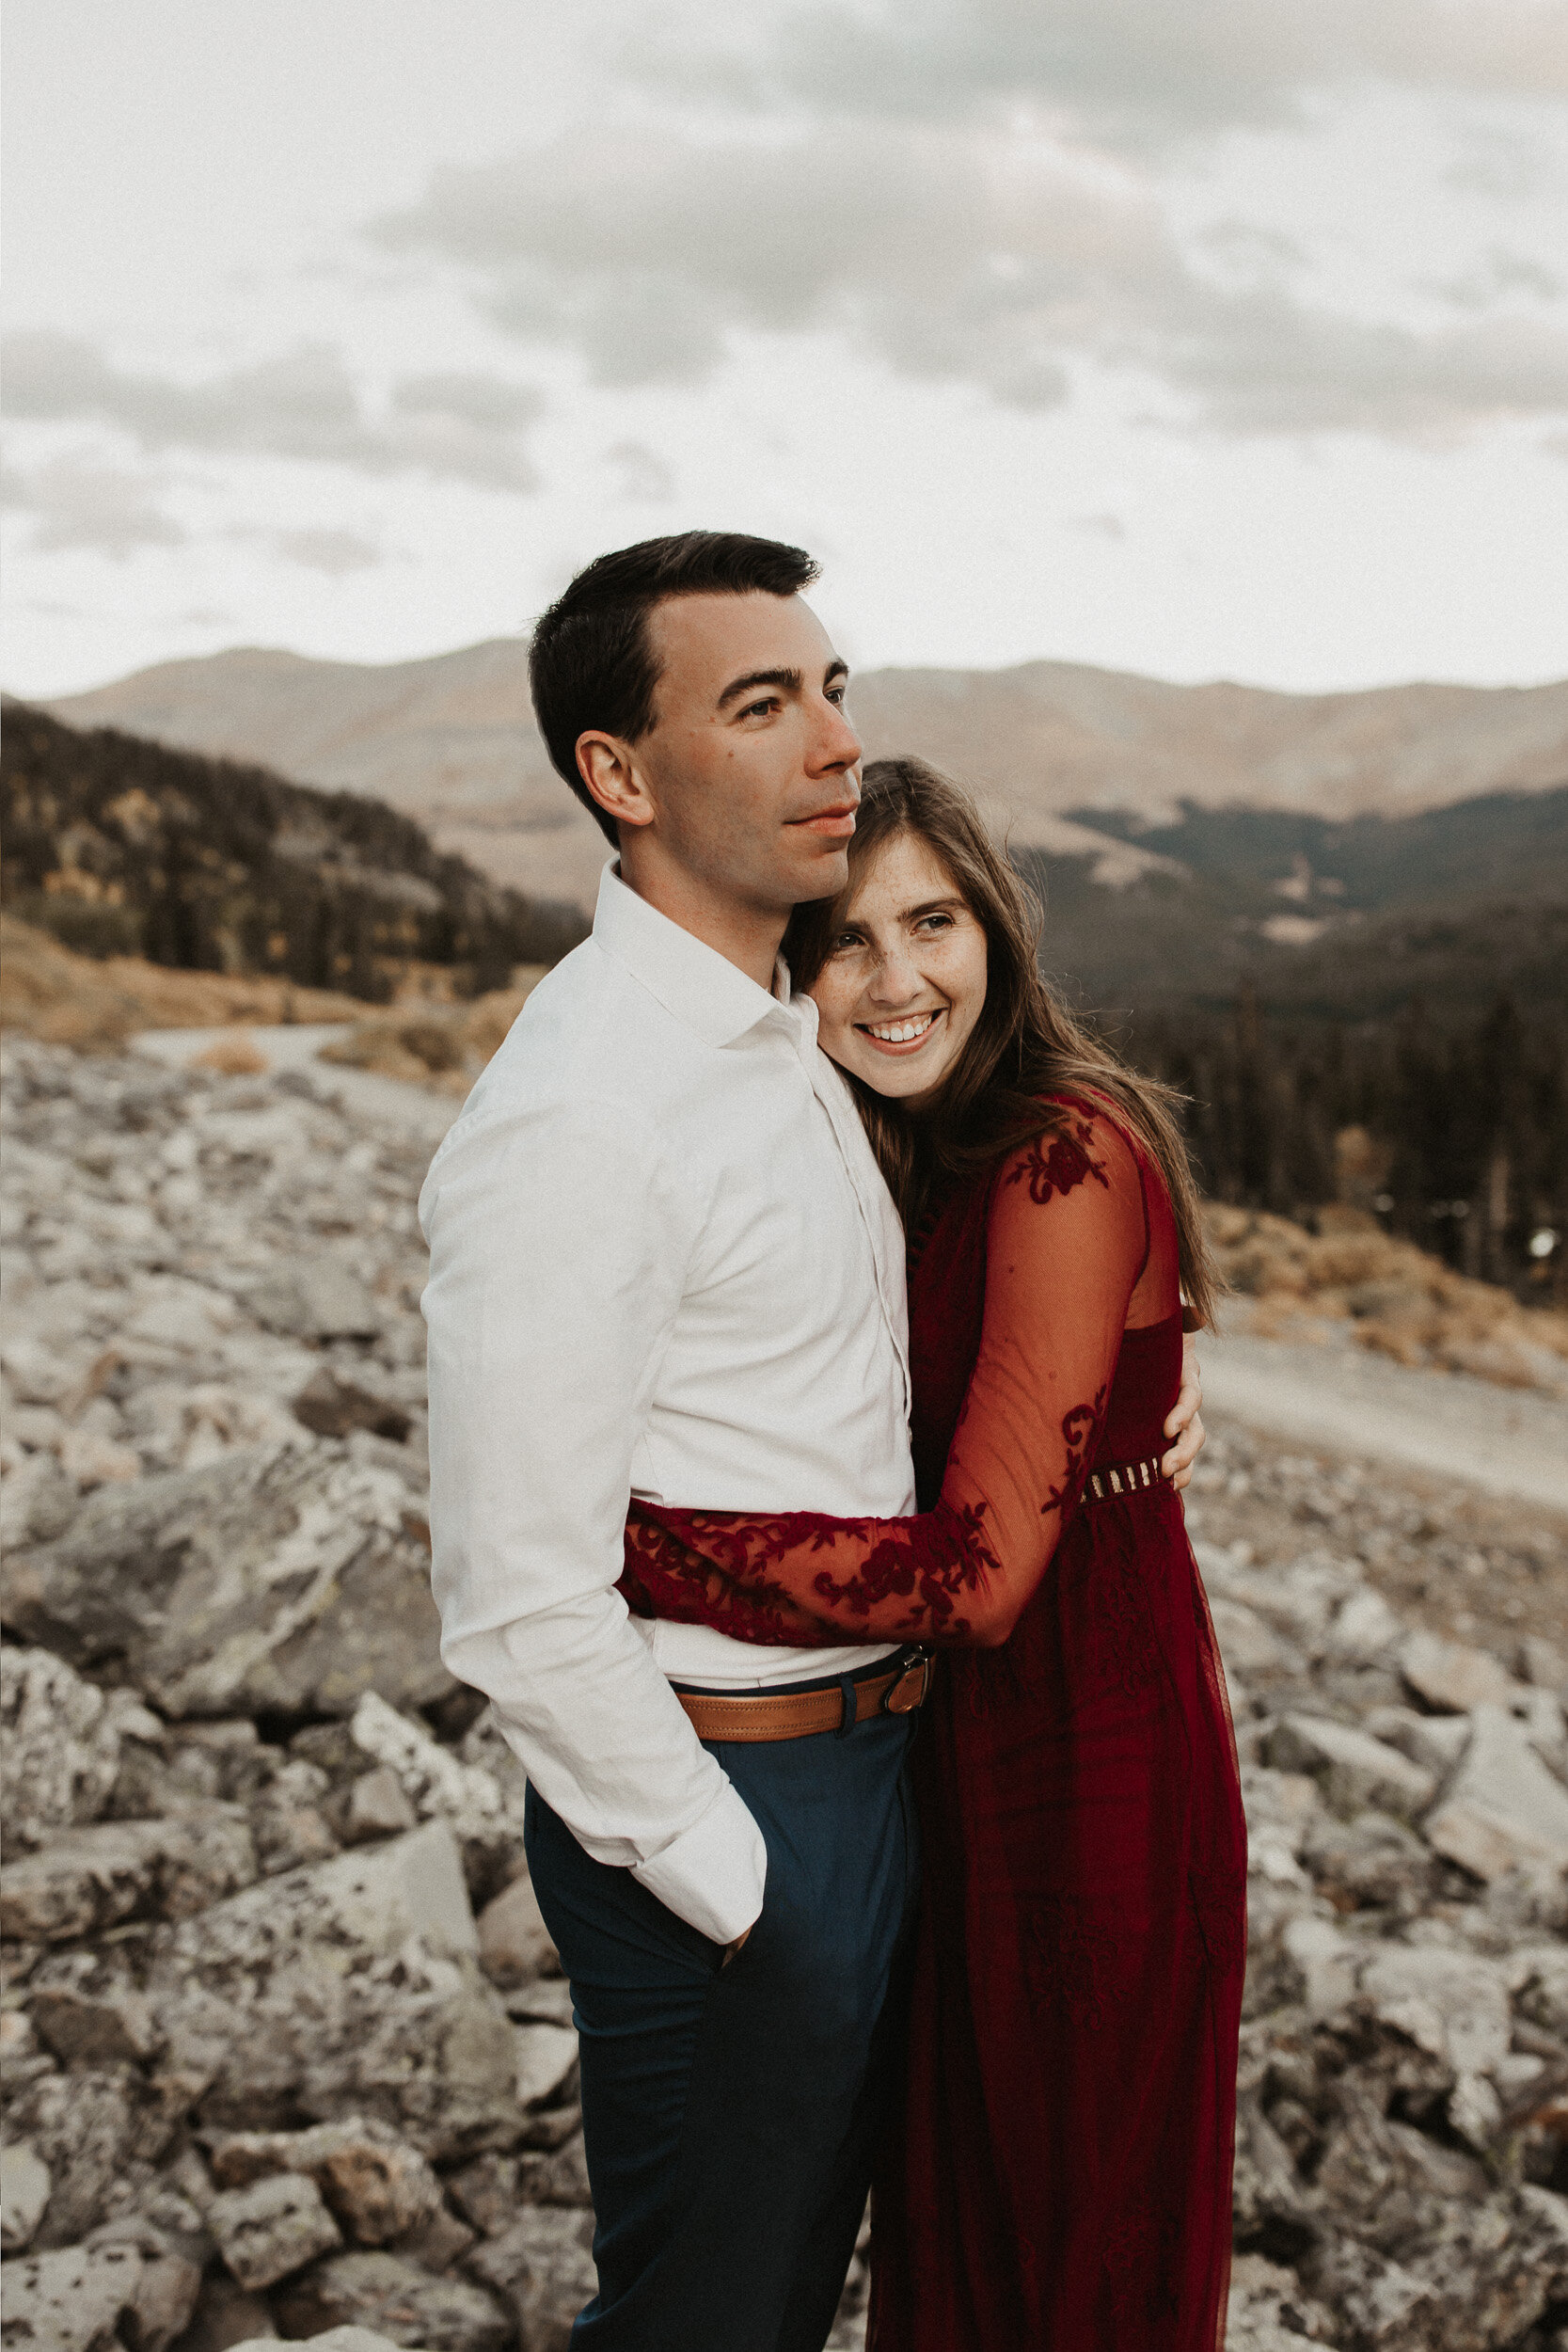 Claire_&_Matthew_Engagment_Breckenridge_Colorado_Fall_0605-Edit.jpg